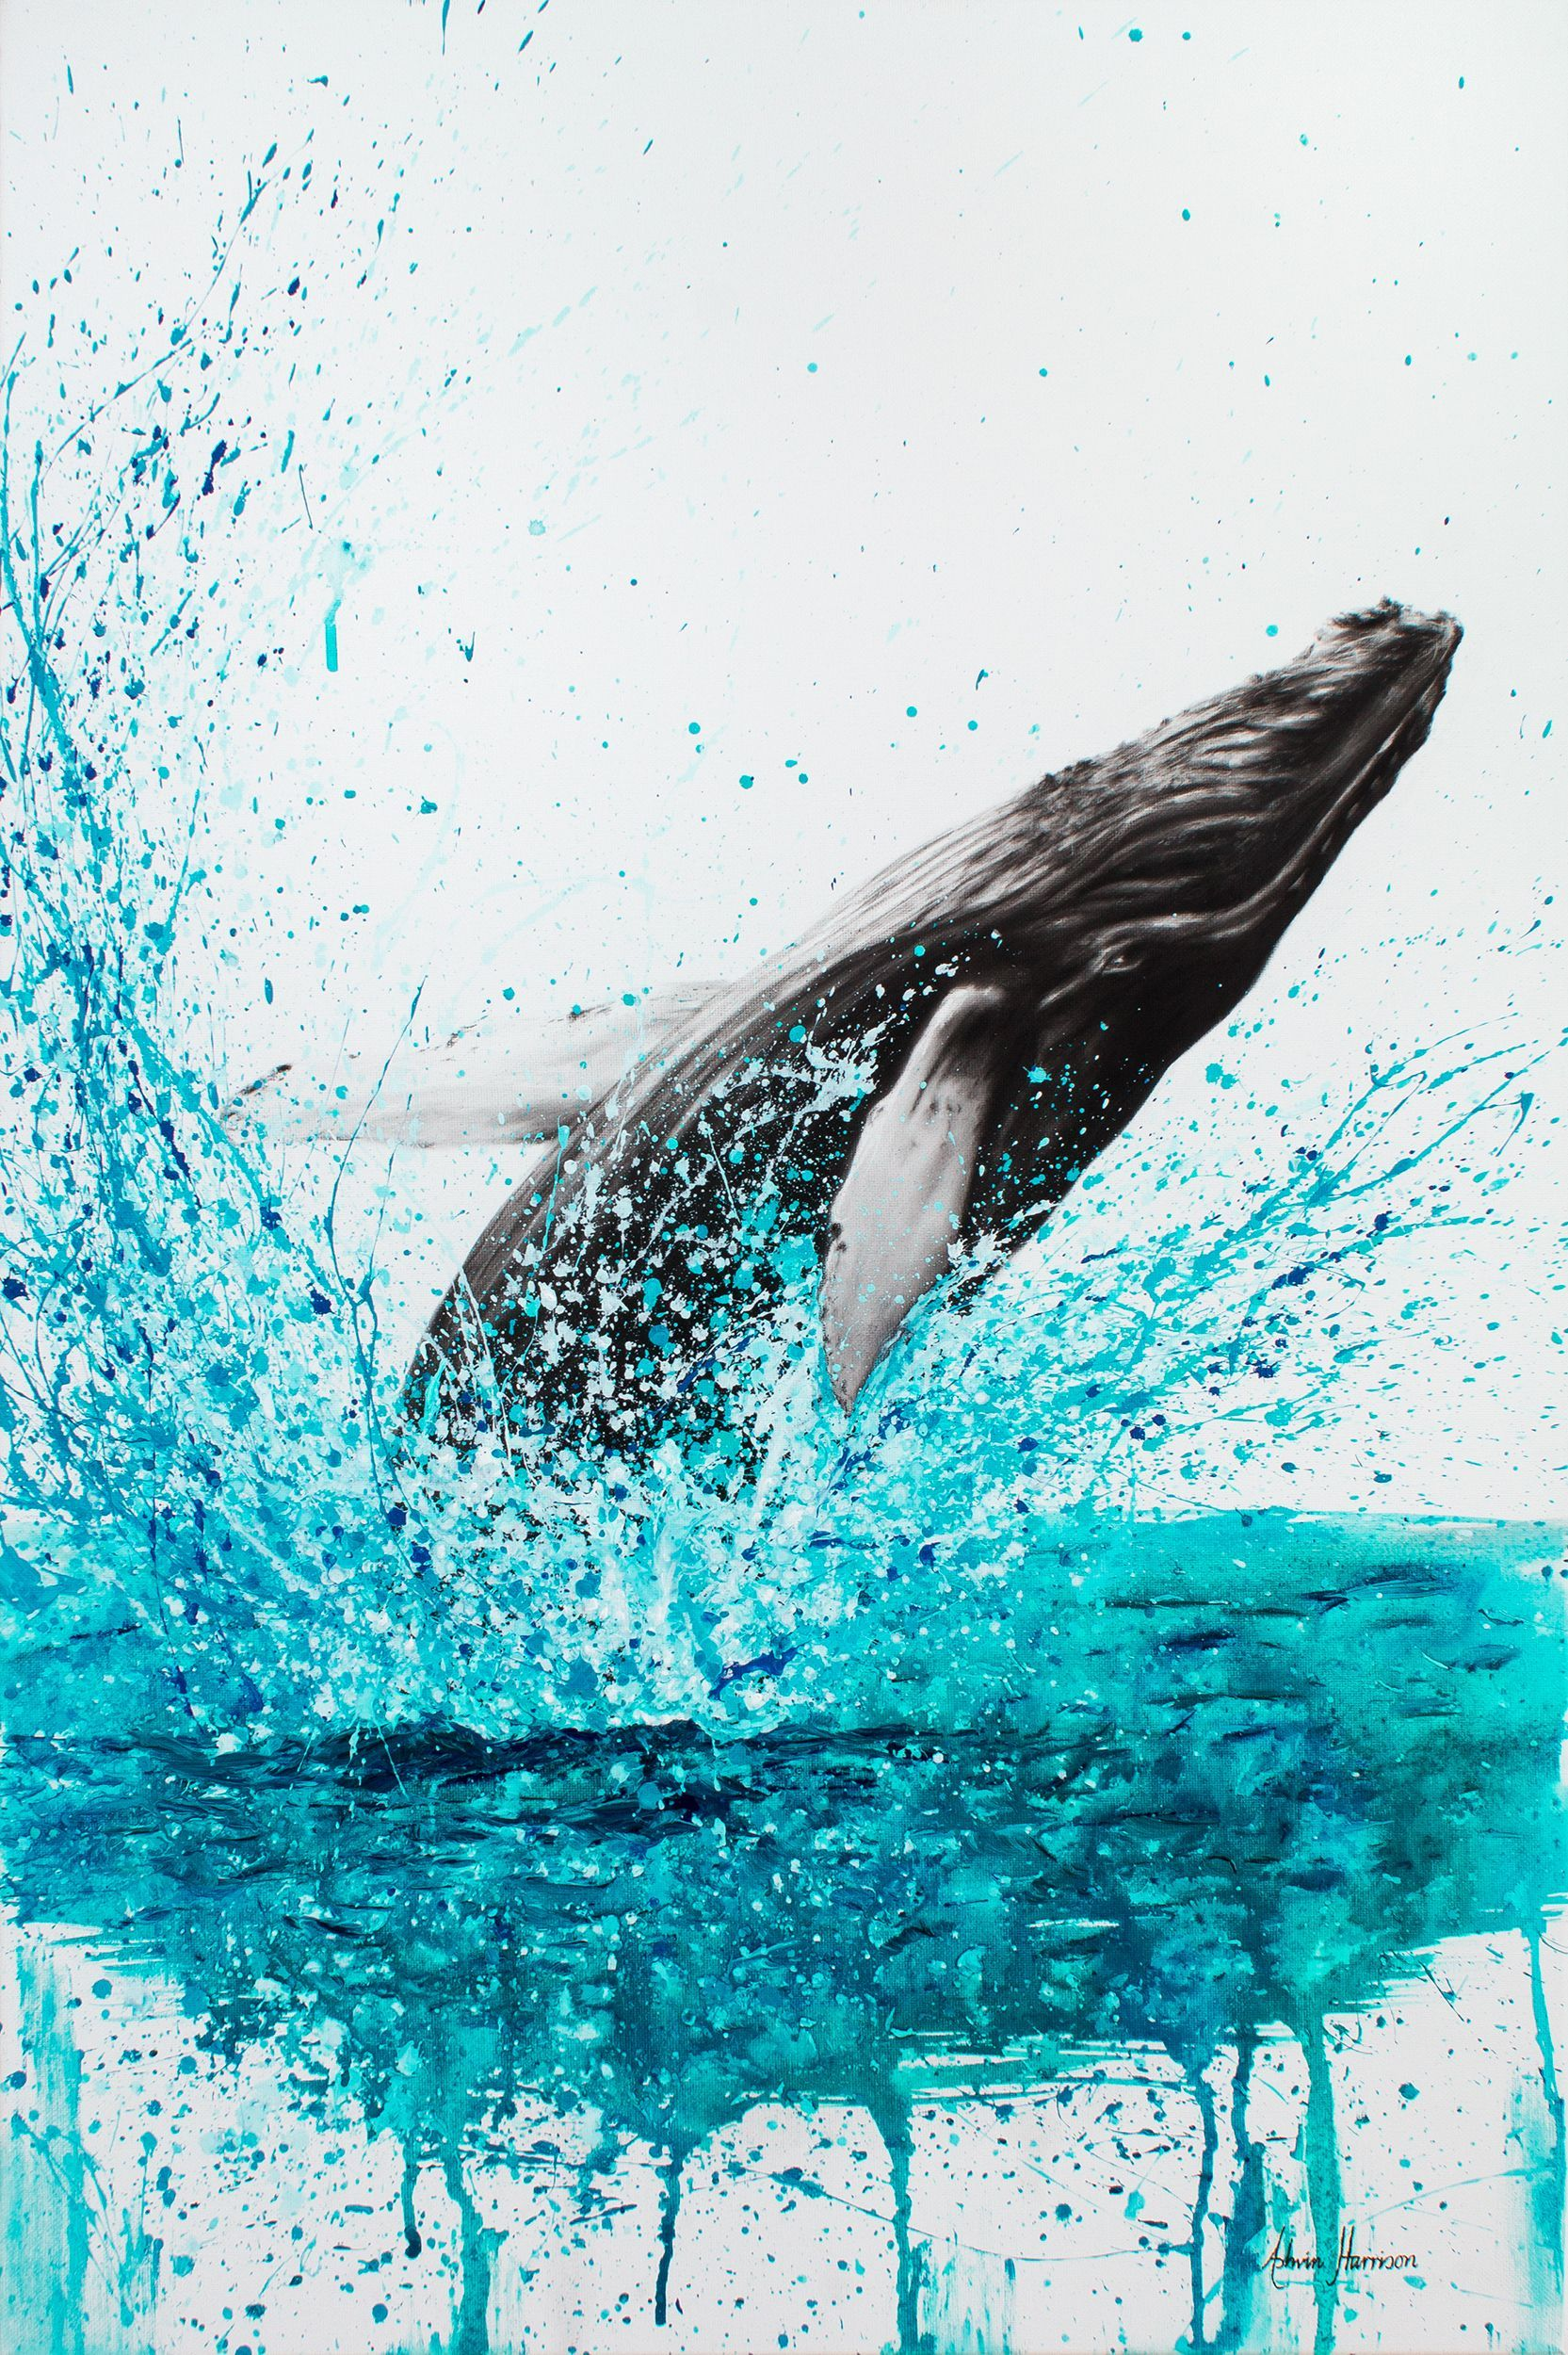 Burleigh Heads Humpback By Ashvin Harrison Paintings For Sale Bluethumb Online Art Gallery Humpbackwhale H Whale Painting Whale Illustration Animal Art